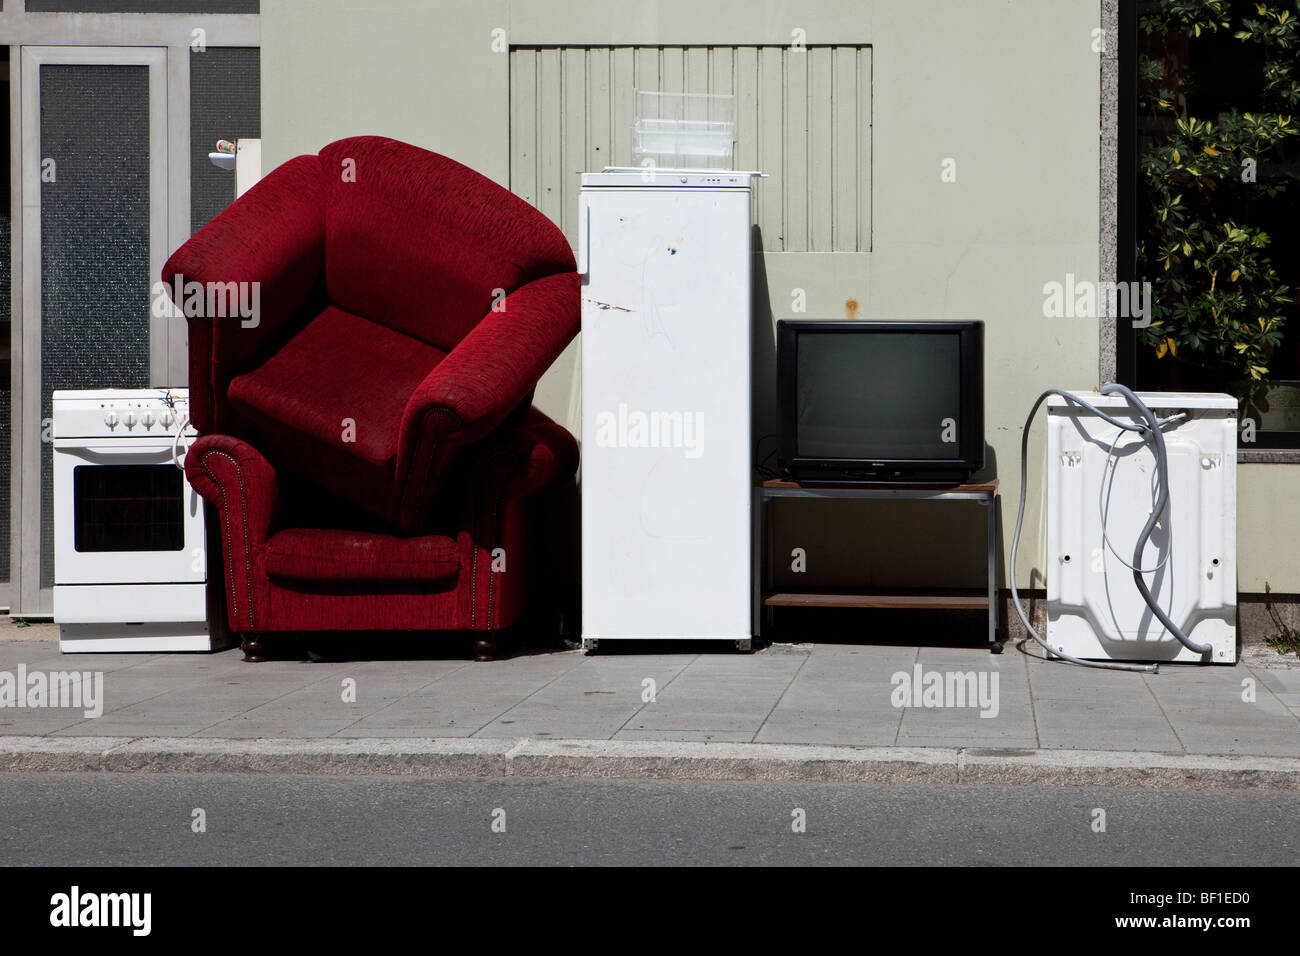 Furniture and appliances on a sidewalk waiting to be moved - Stock Image